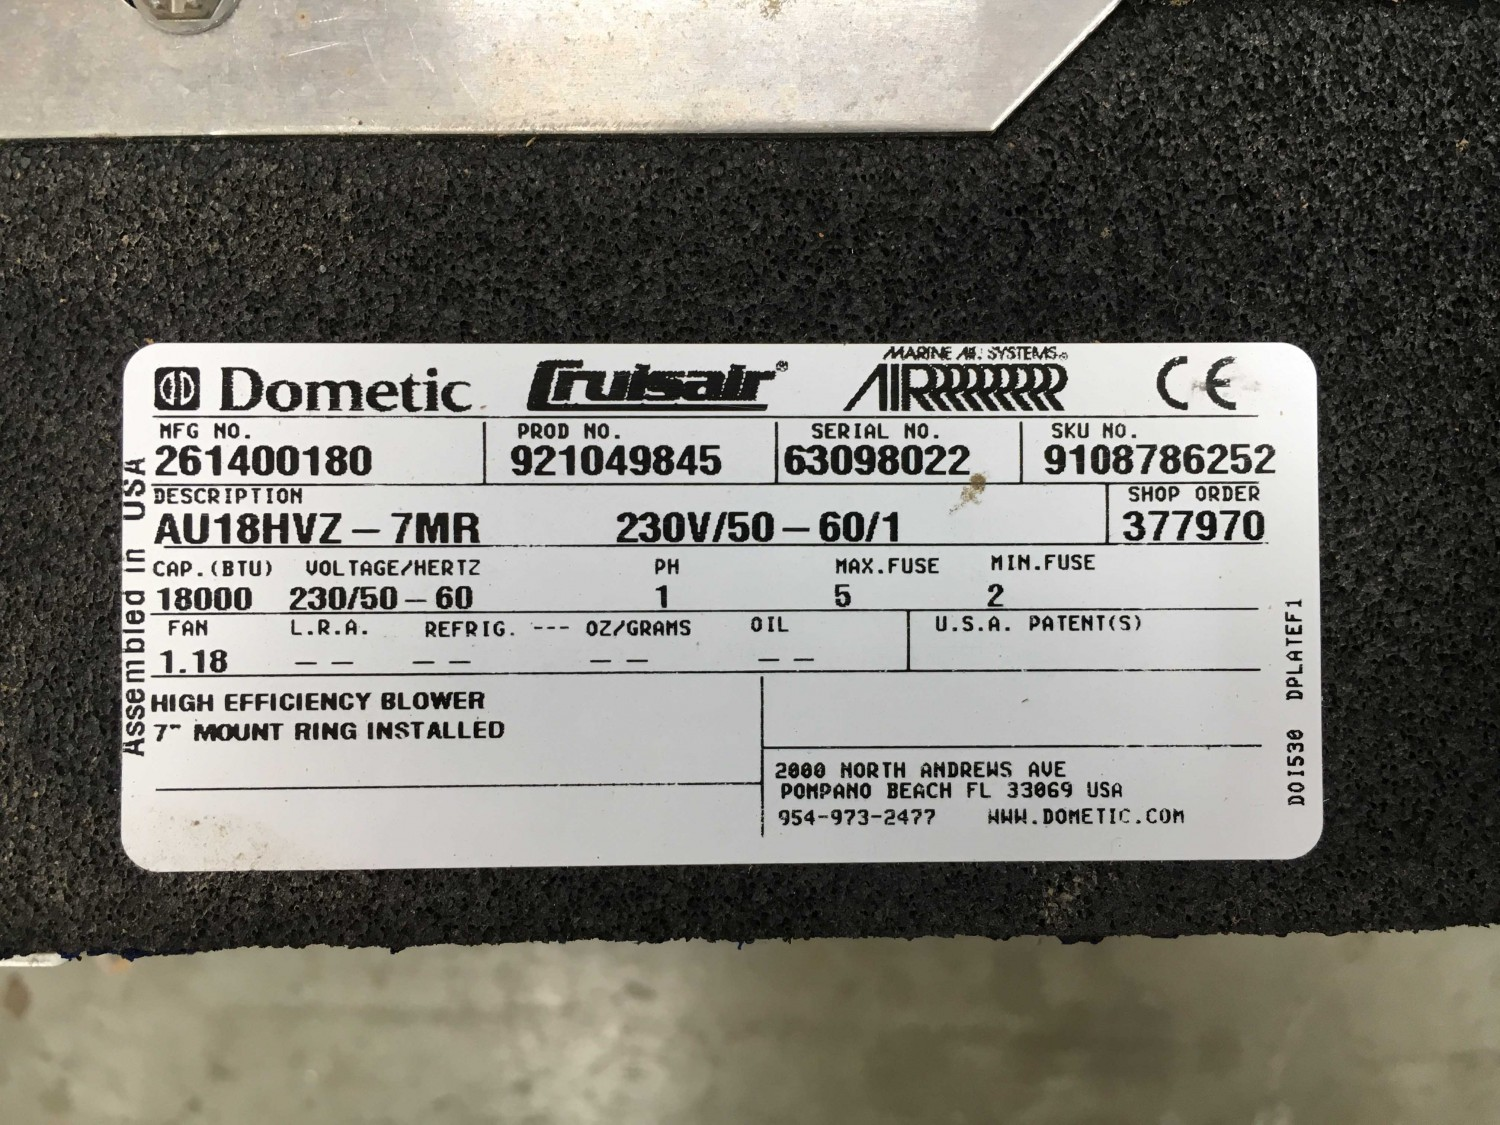 InTheBite – SOLD 2 Dometic Air Handlers 18,000 BTUS Lightly